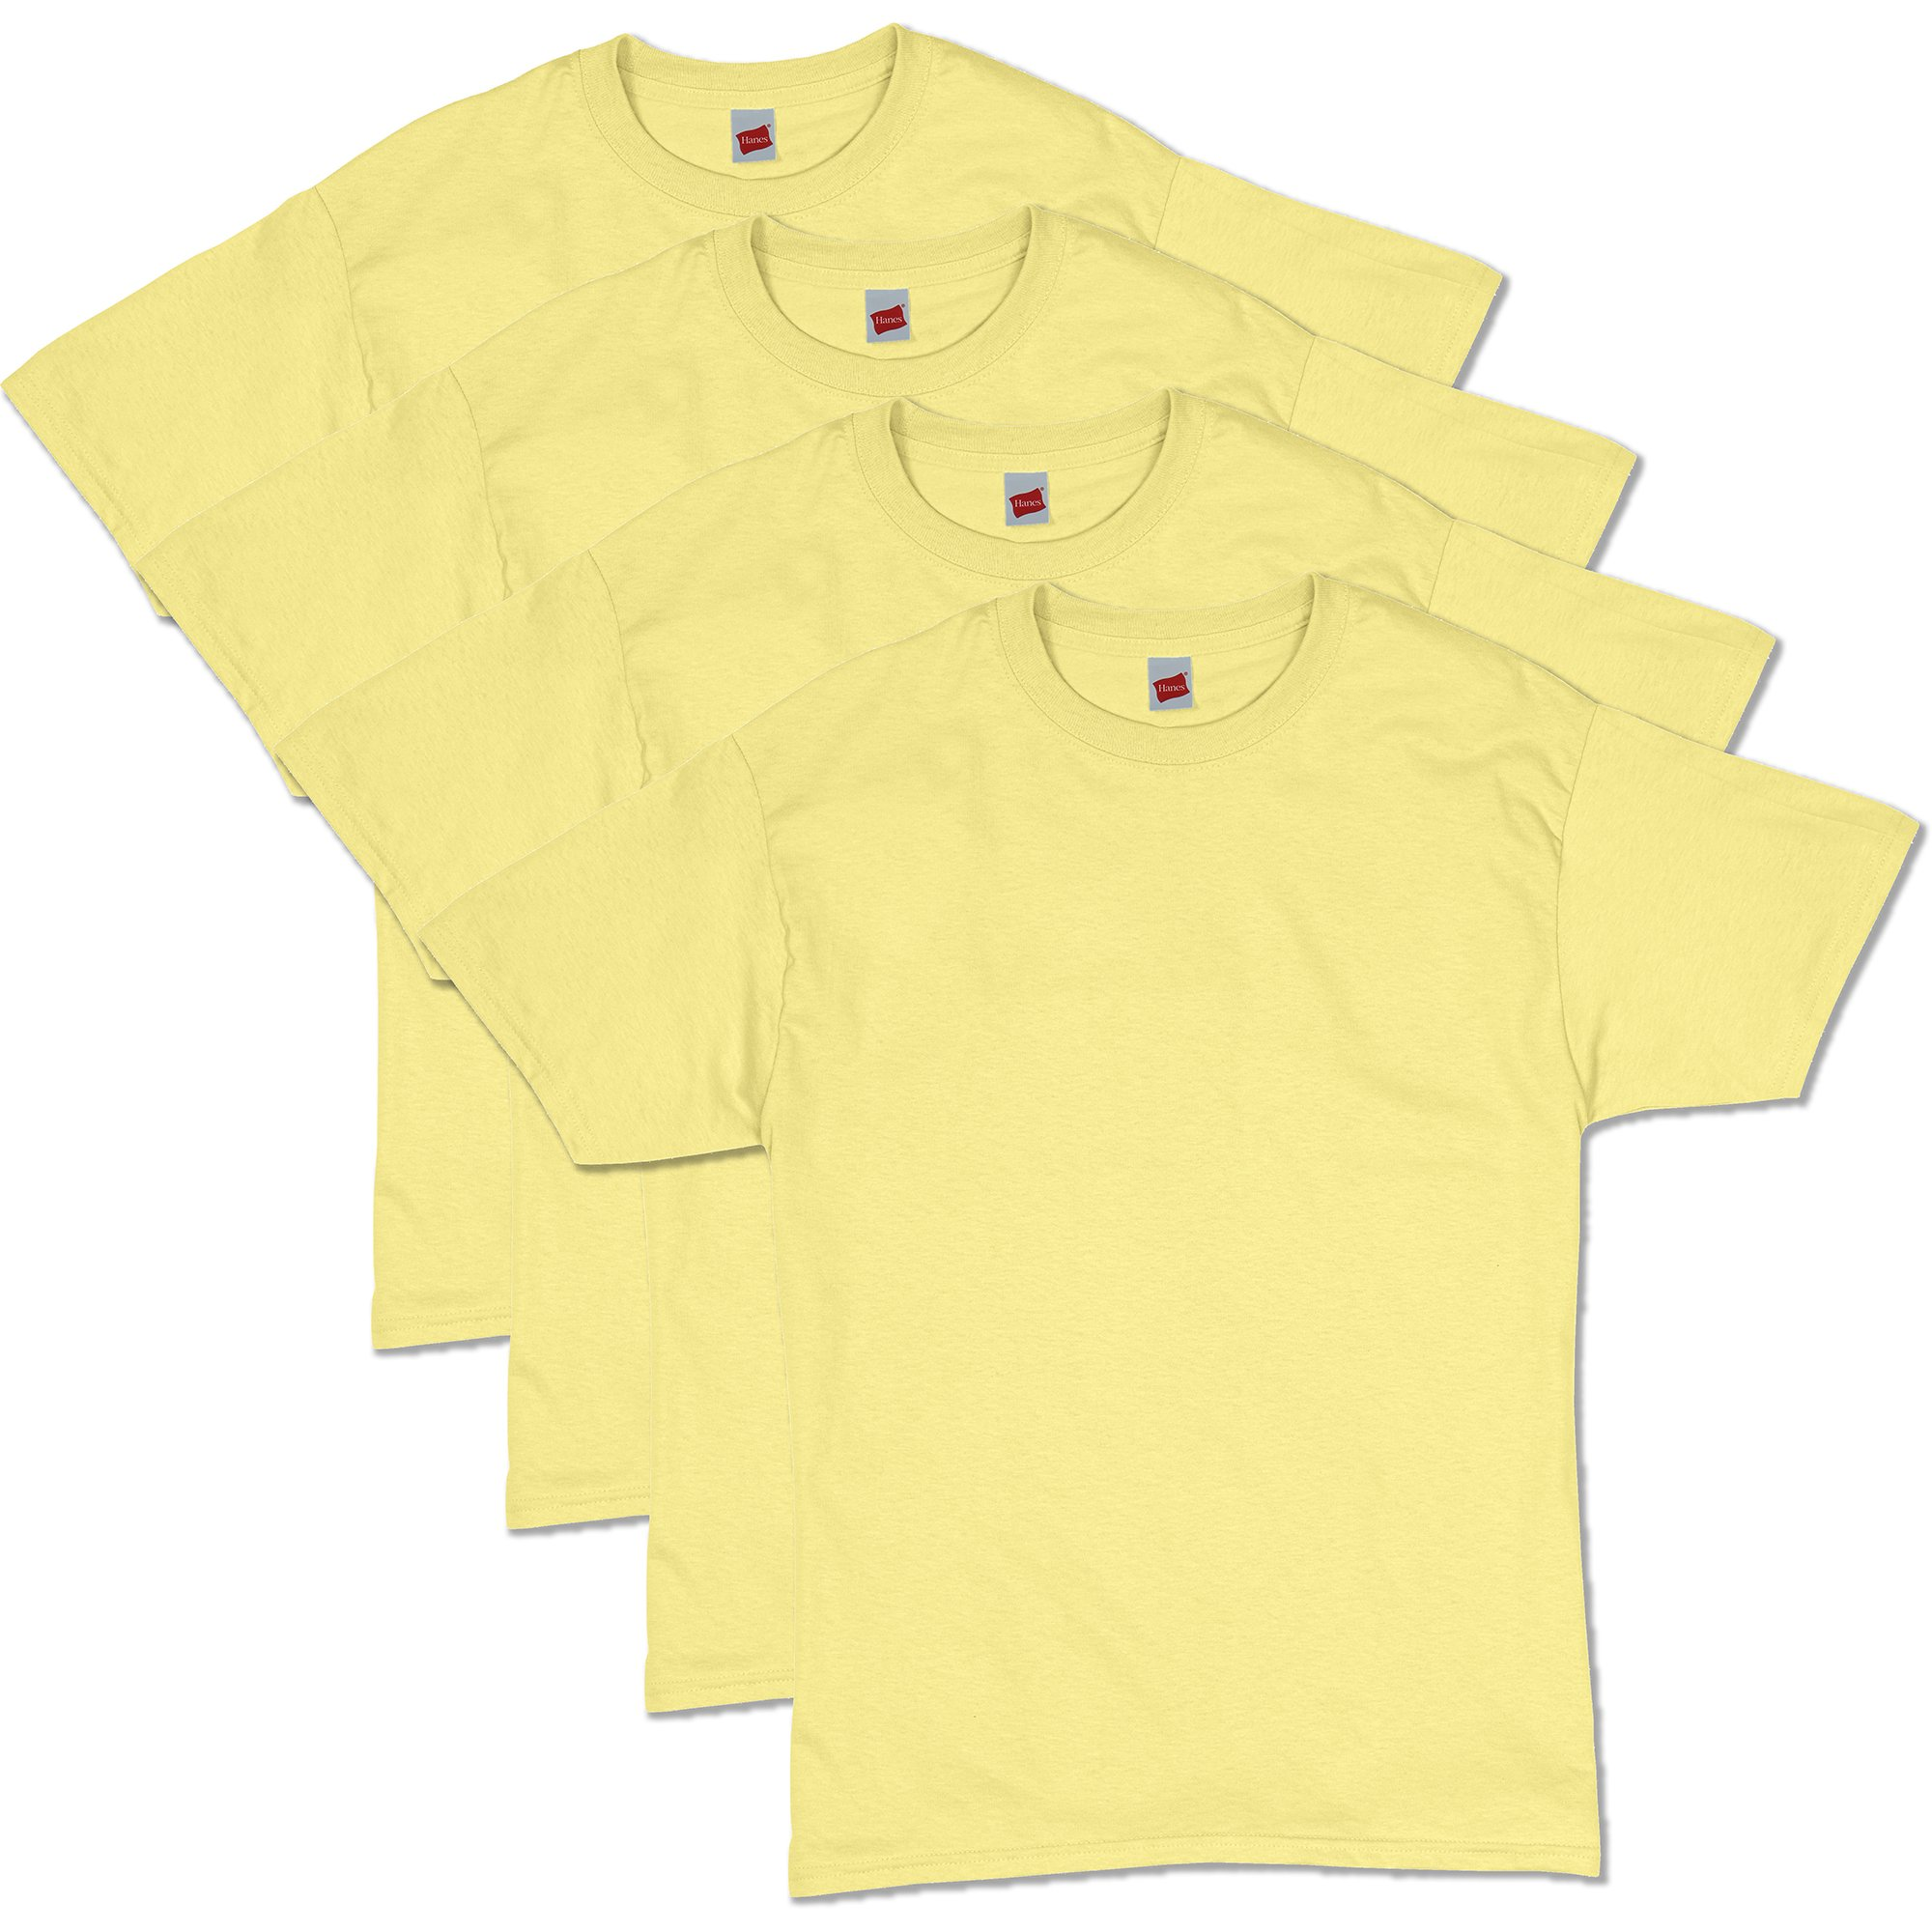 Hanes Men's Comfortsoft T-Shirt (Pack Of 4),yellow,3XL by Hanes (Image #1)